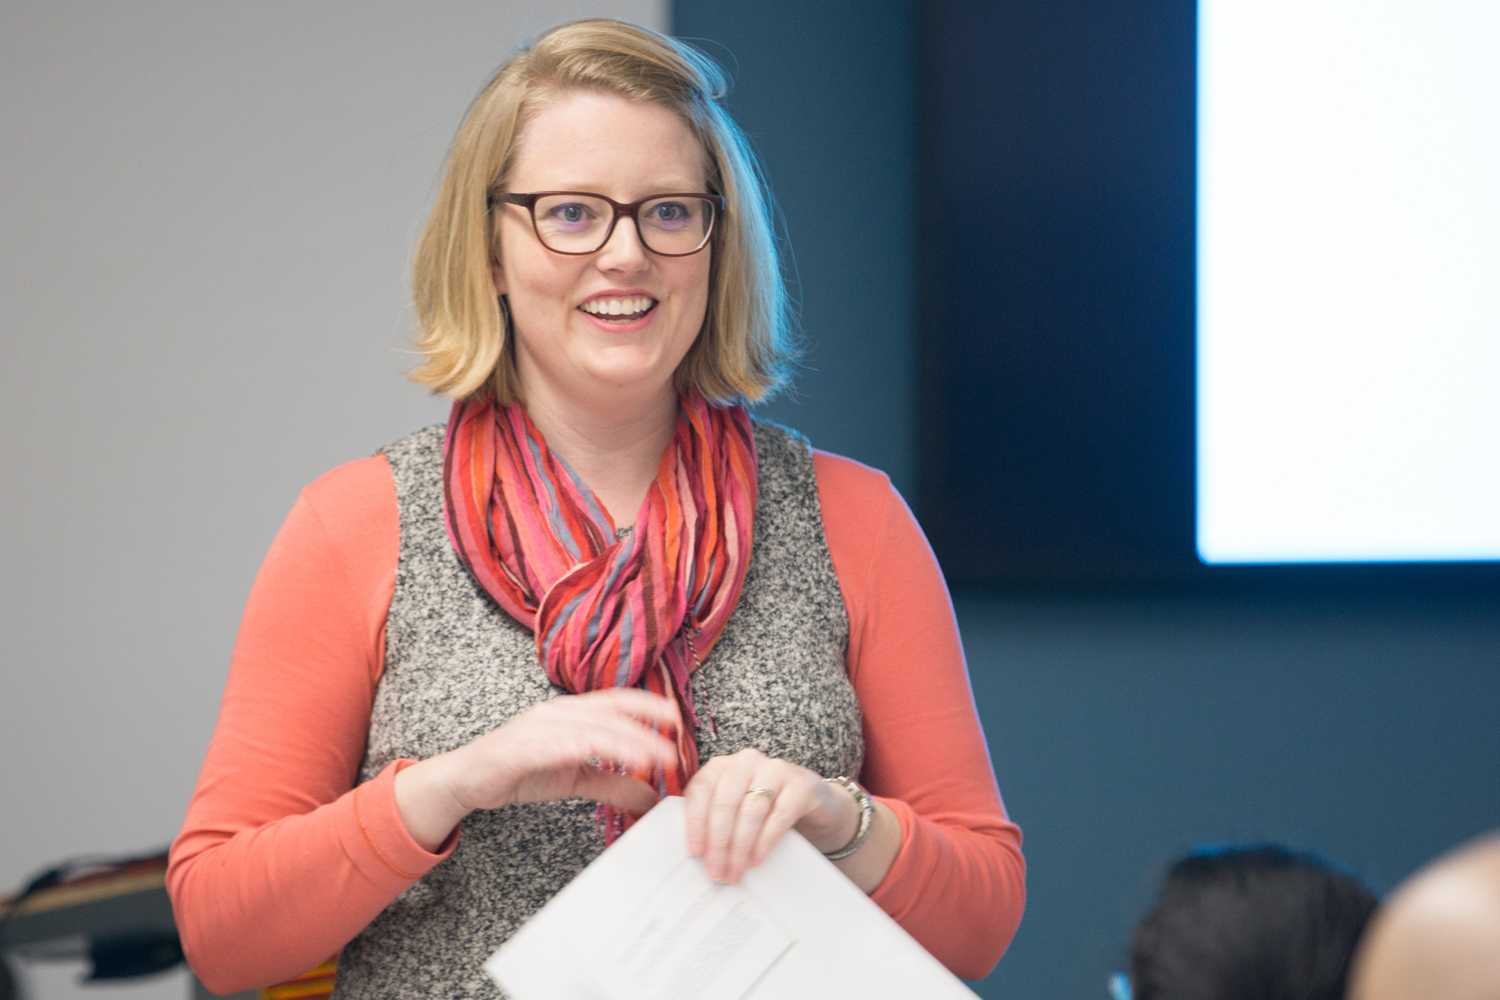 """Anna-Maria Karnes, Pitt's African Studies Program Community Engagement Coordinator, discusses empowering Ethiopian women and girls to seek higher education at Tuesday afternoon's """"Education in Ethiopia"""" event. (Photo by Anas Dighriri 